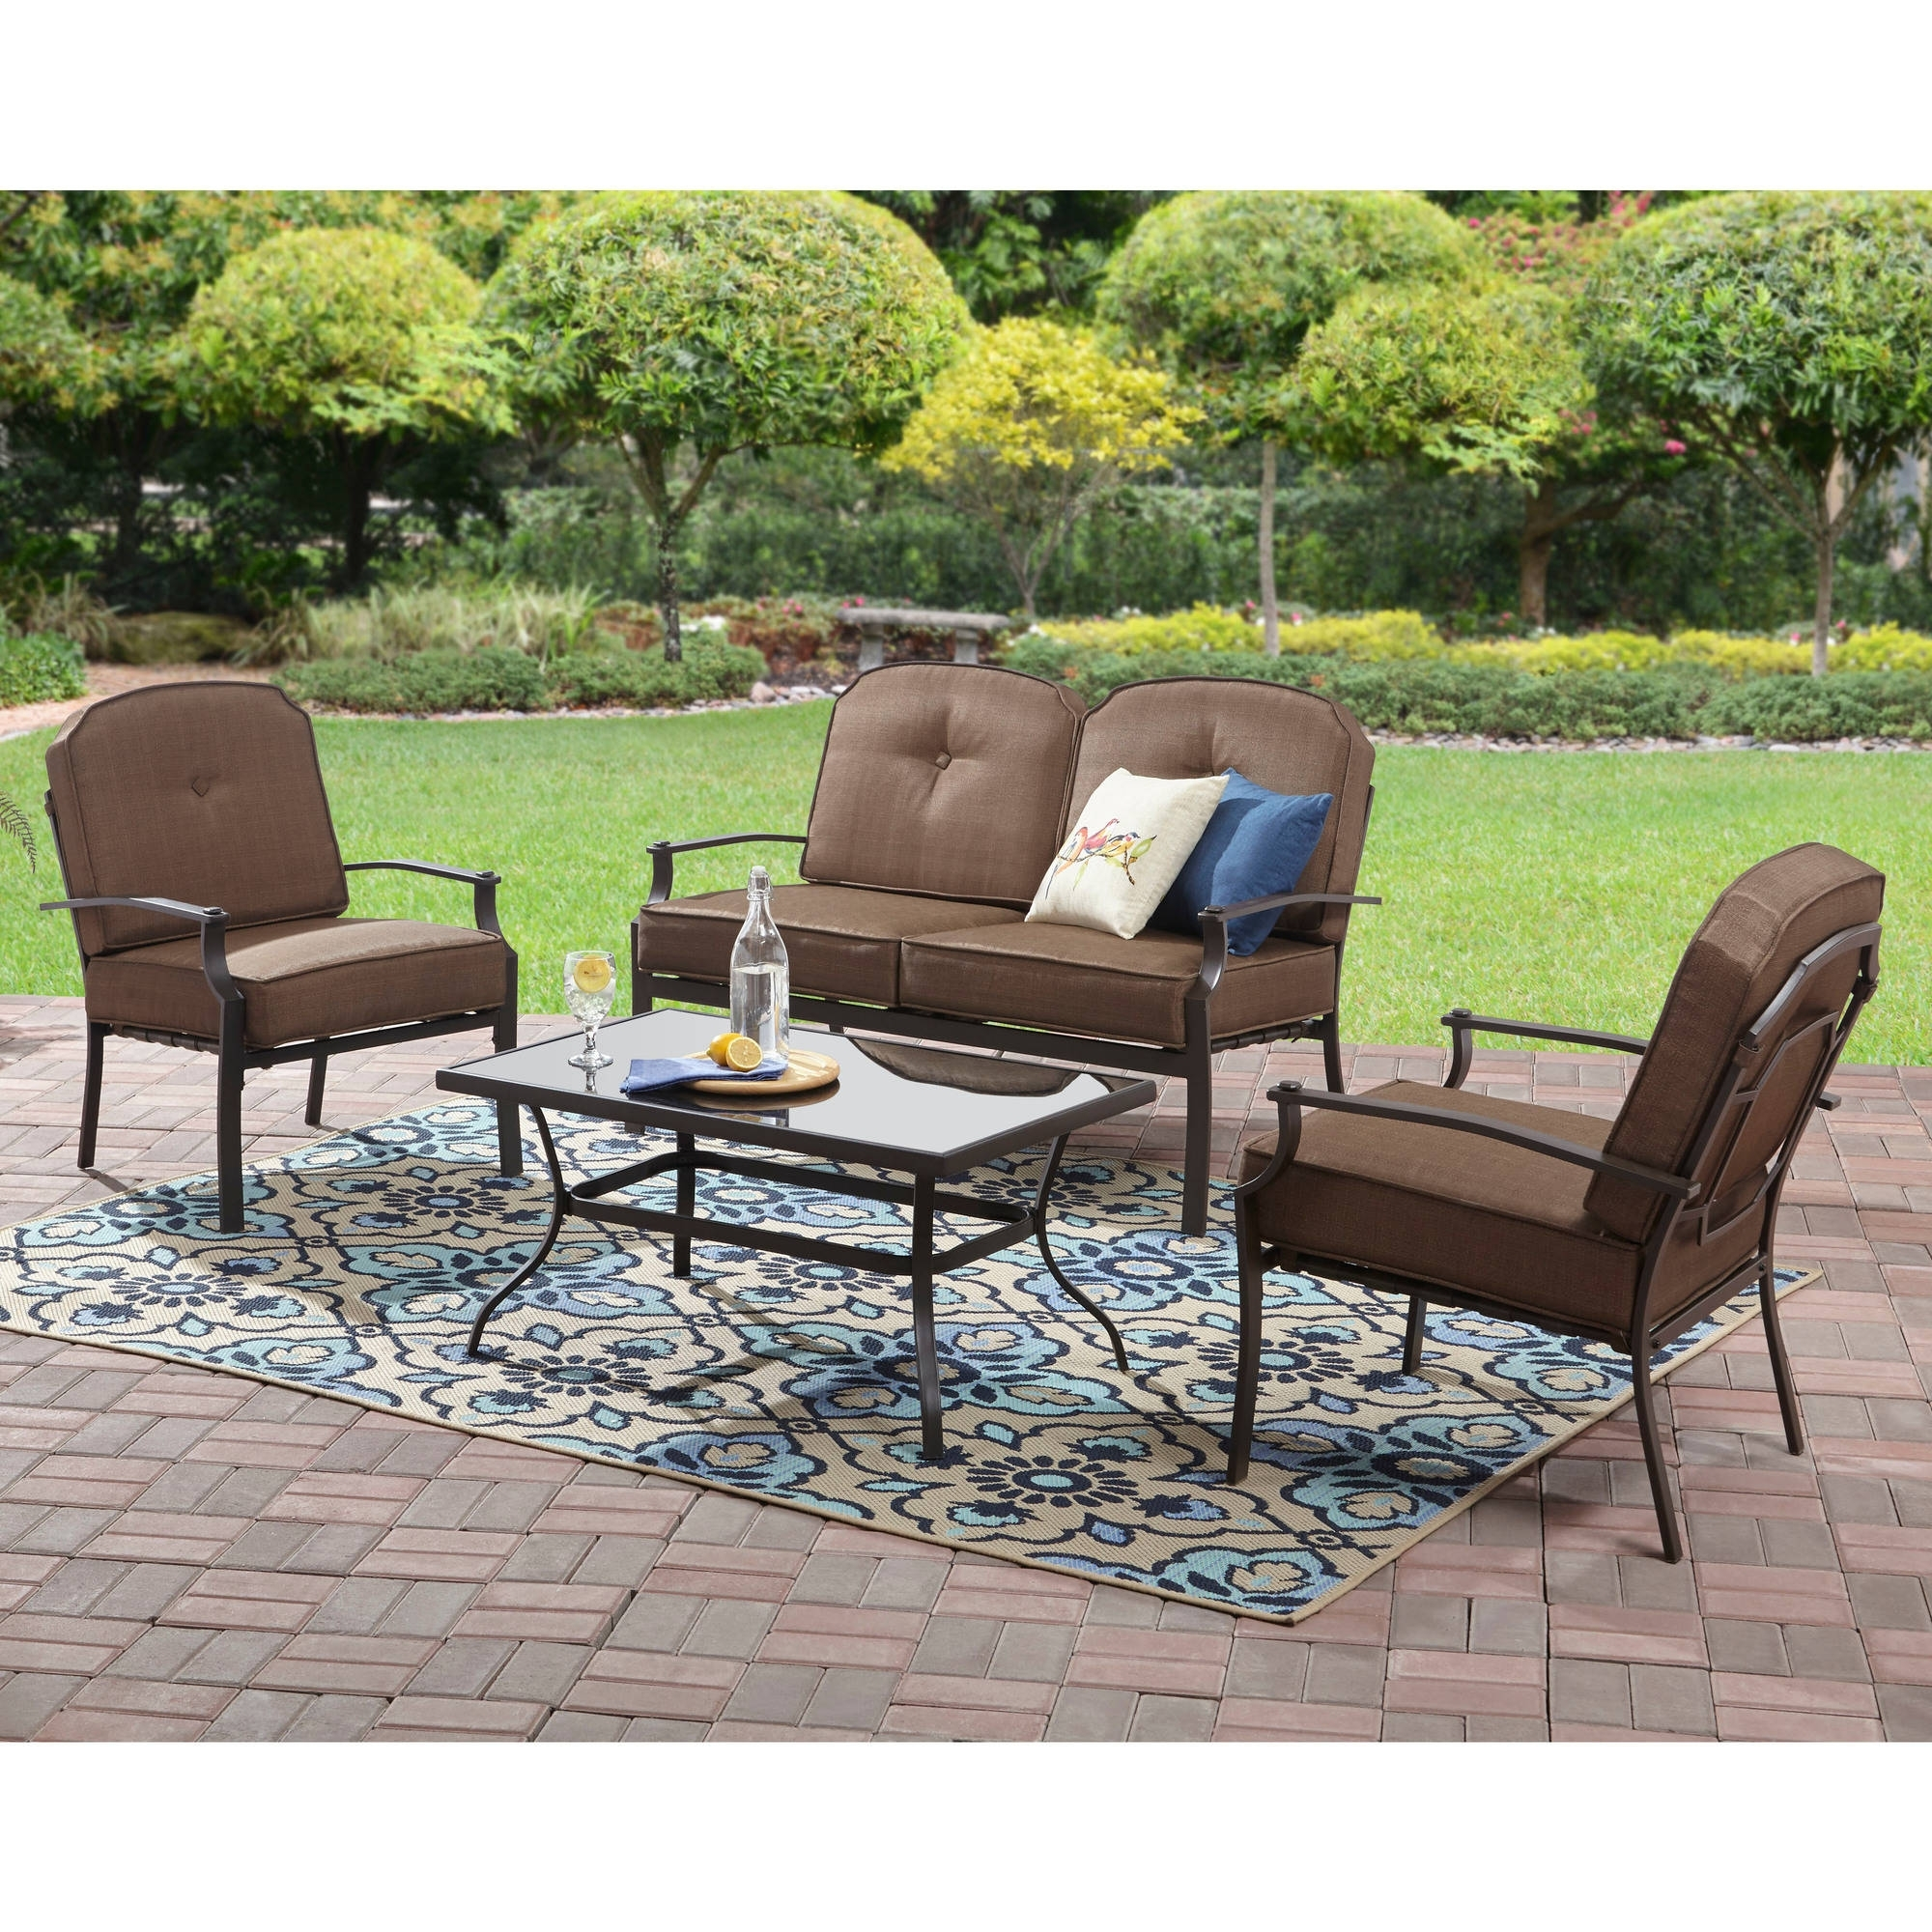 Latest Mainstays Spring Creek 5 Piece Patio Dining Set, Seats 4 – Walmart Intended For Steel Patio Conversation Sets (View 4 of 15)